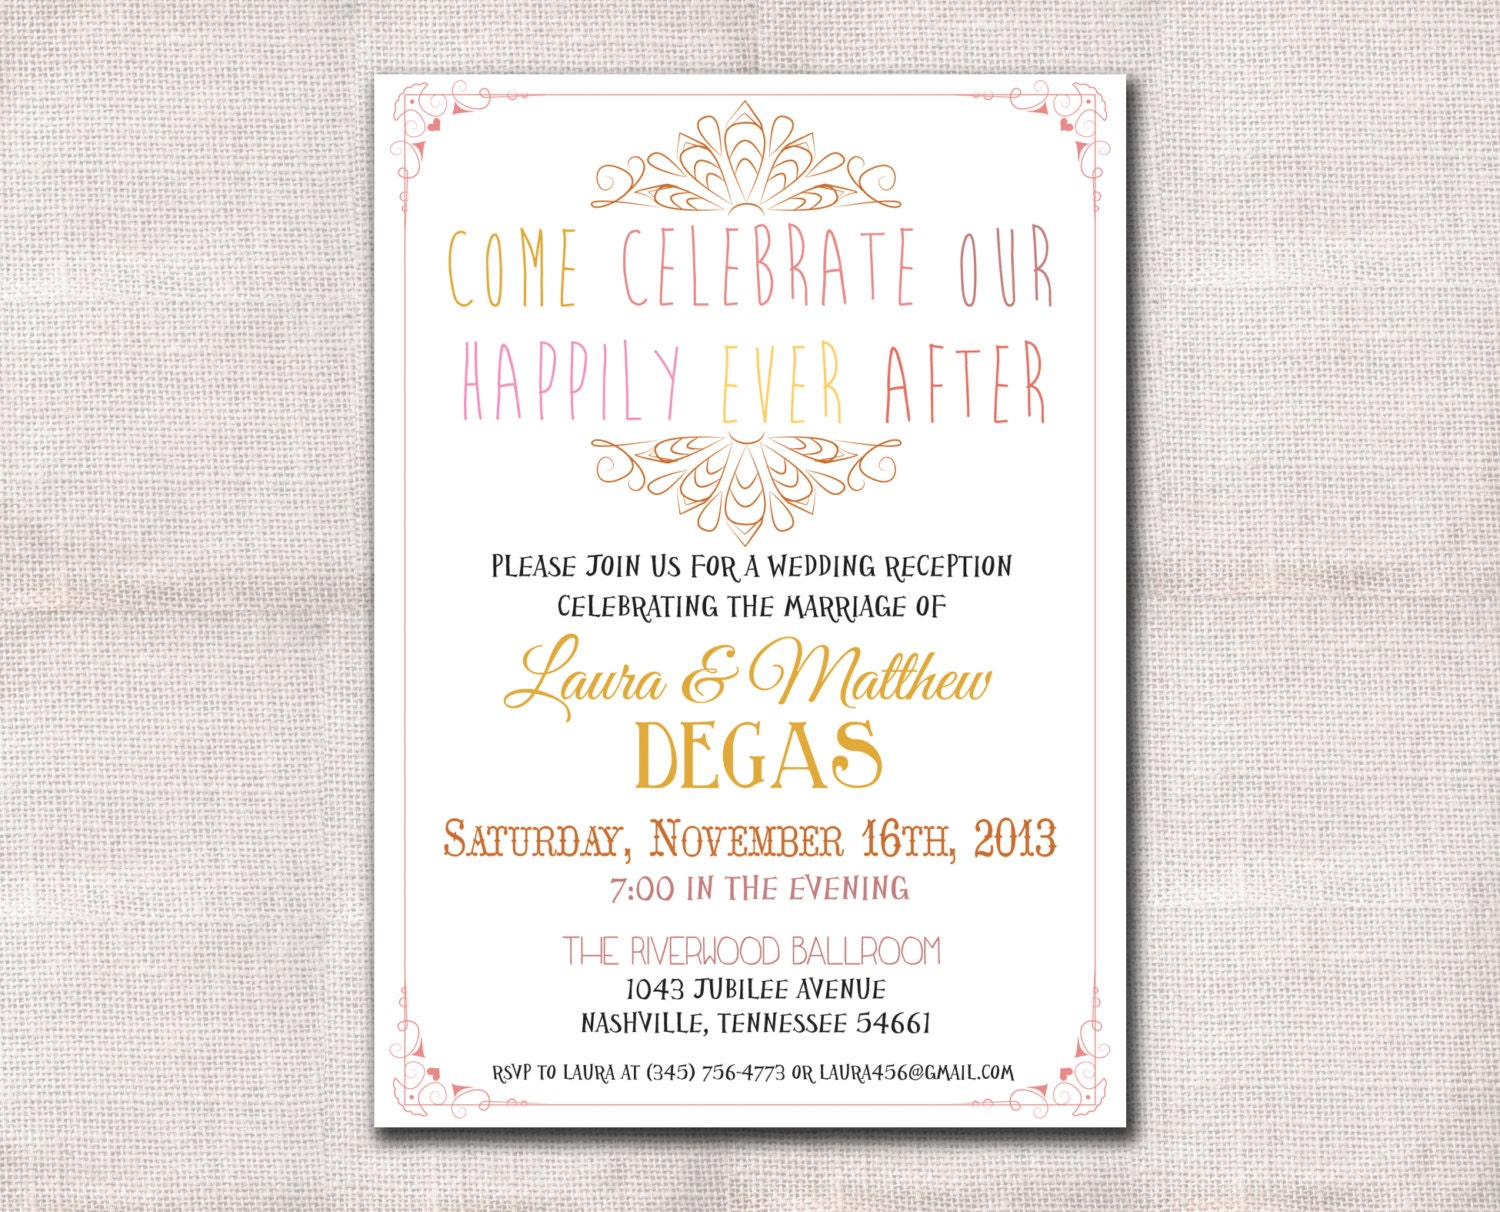 Invitation Wording For Wedding Reception: Wedding Reception Invitation Custom Printable 5x7